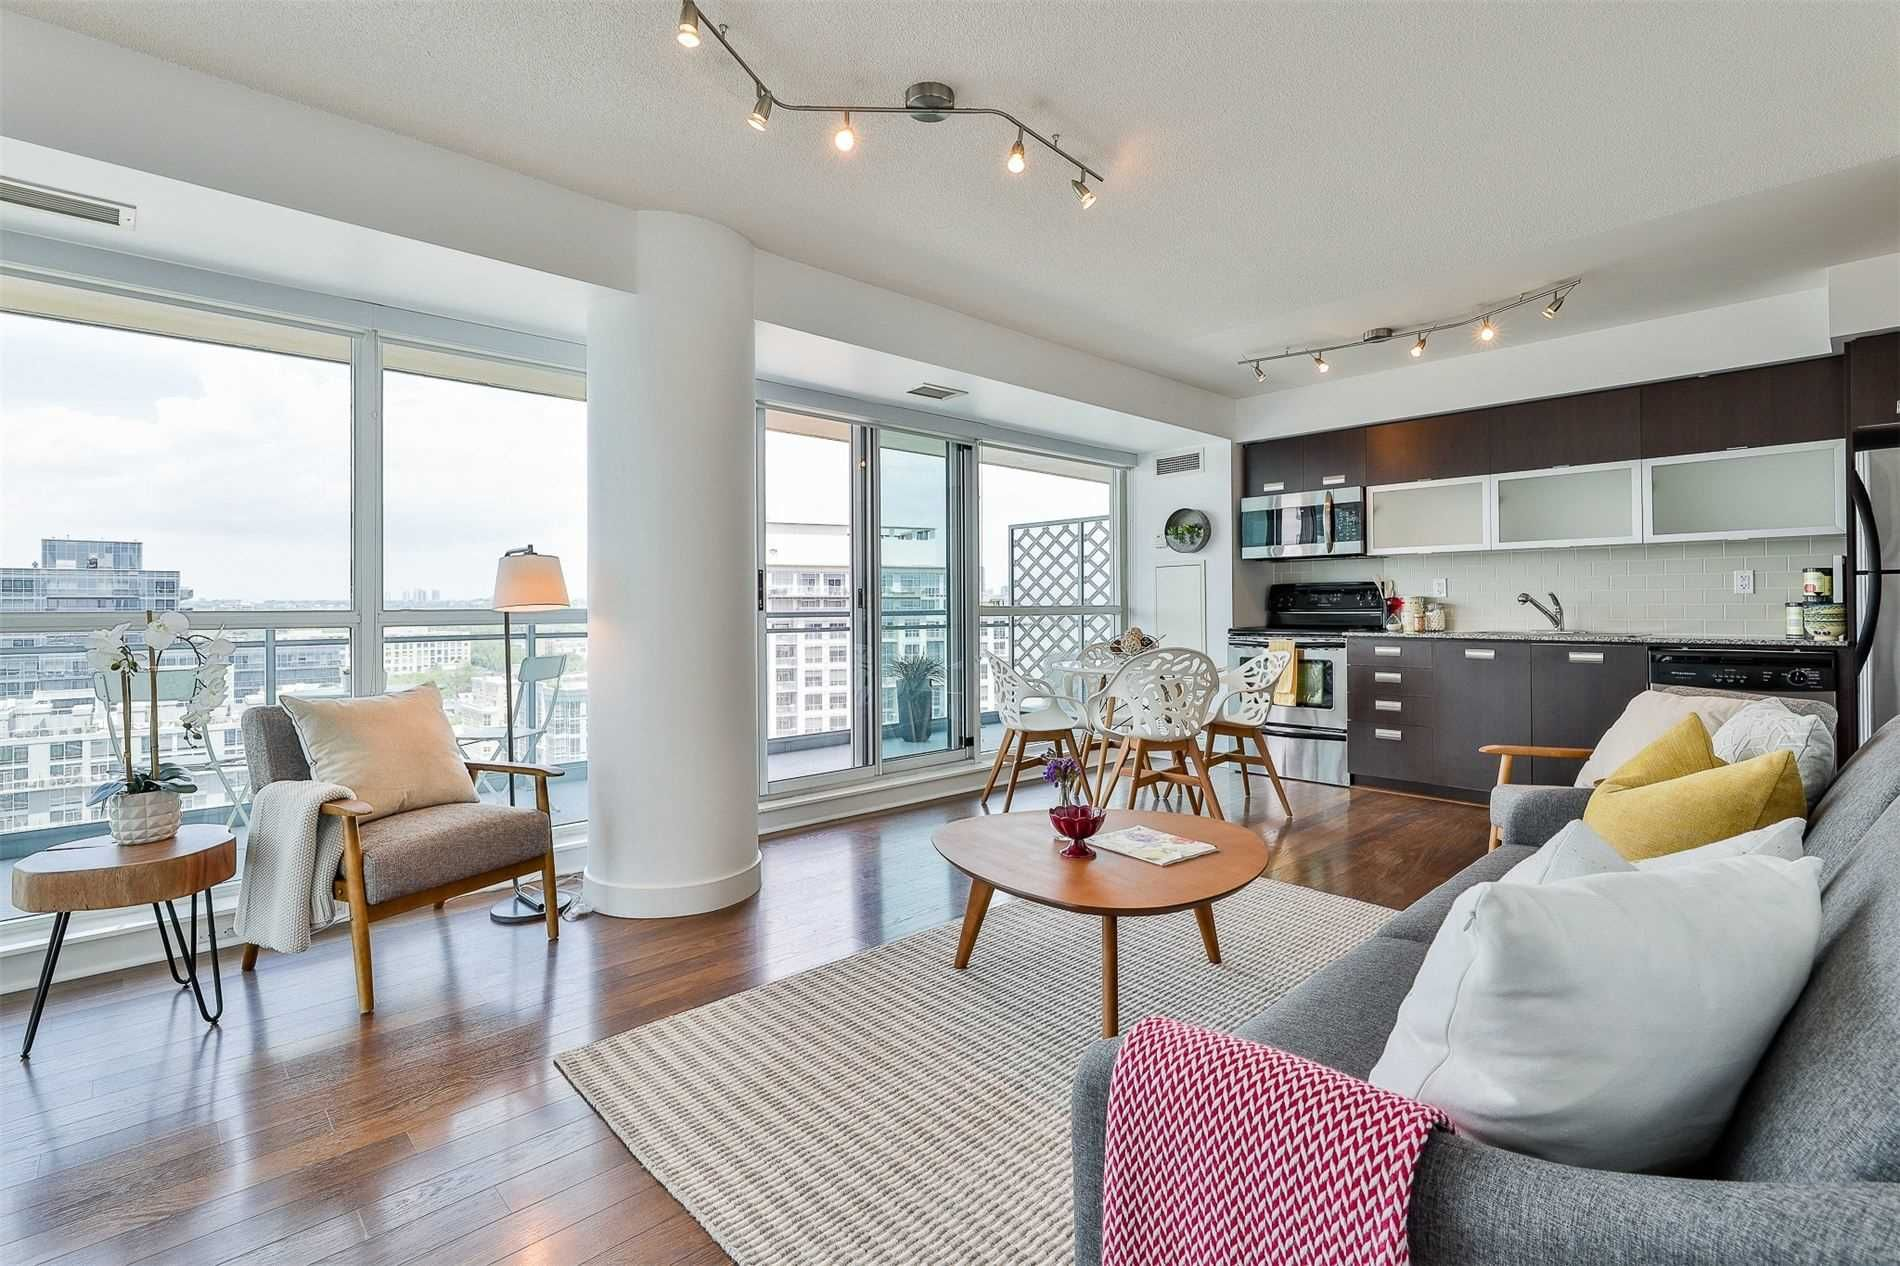 80 Western Battery Rd, unit 1404 for sale in Toronto - image #1